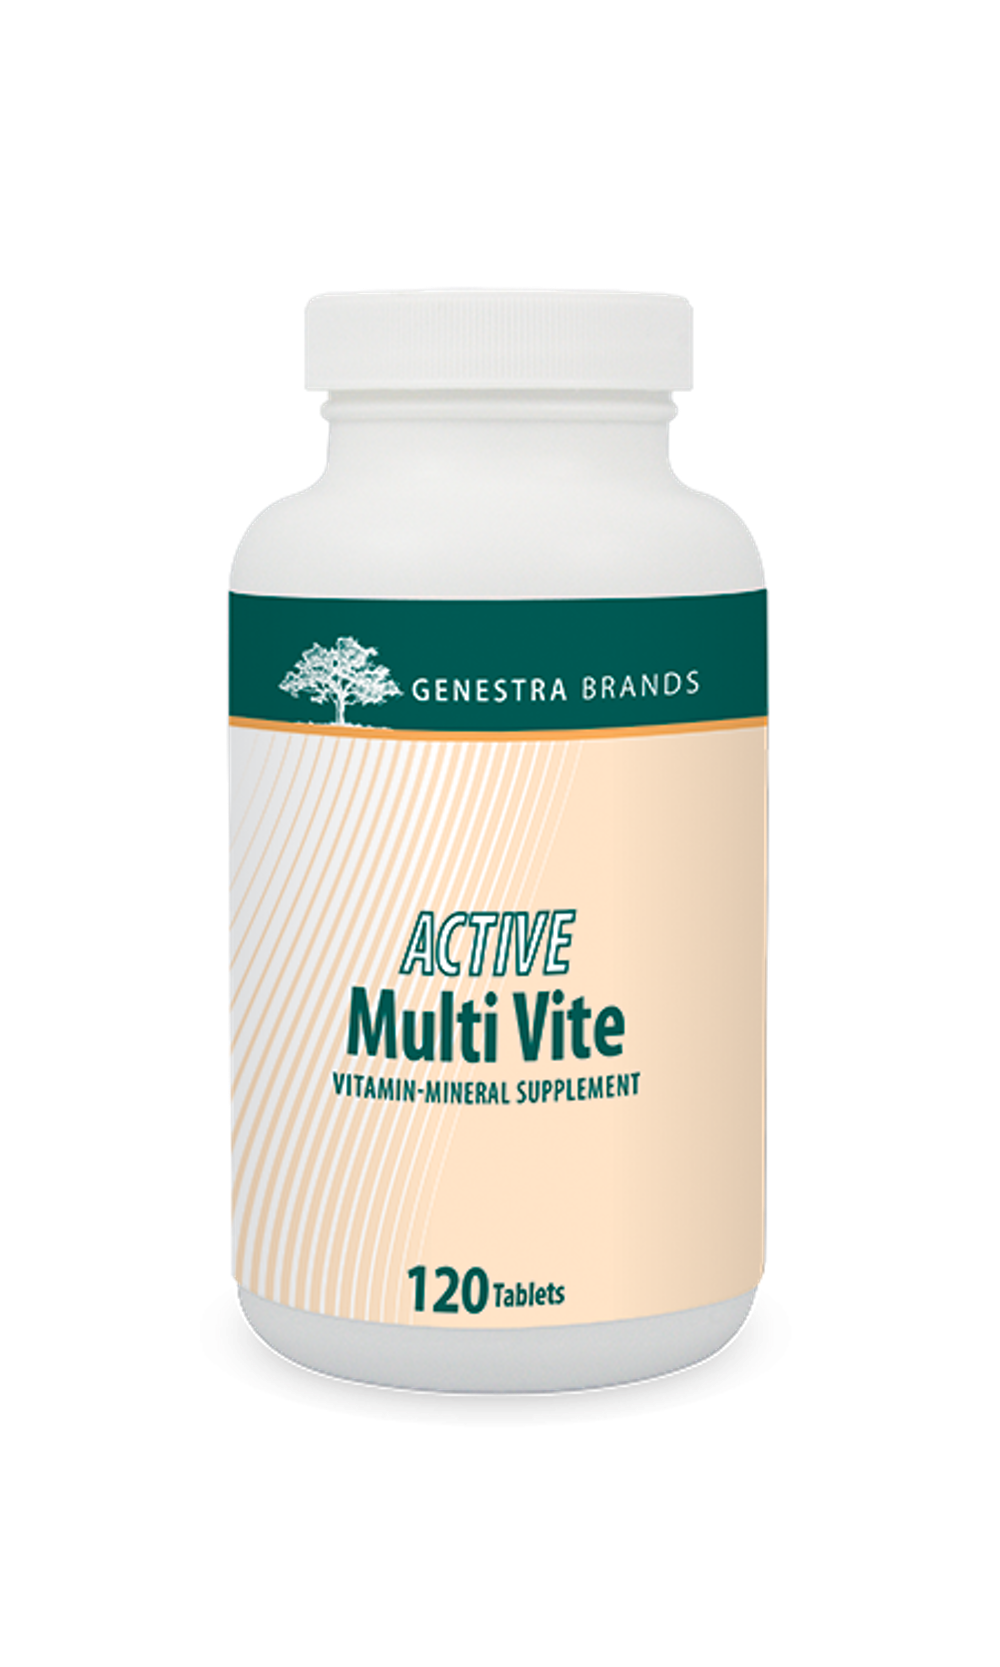 Active Multi Vite